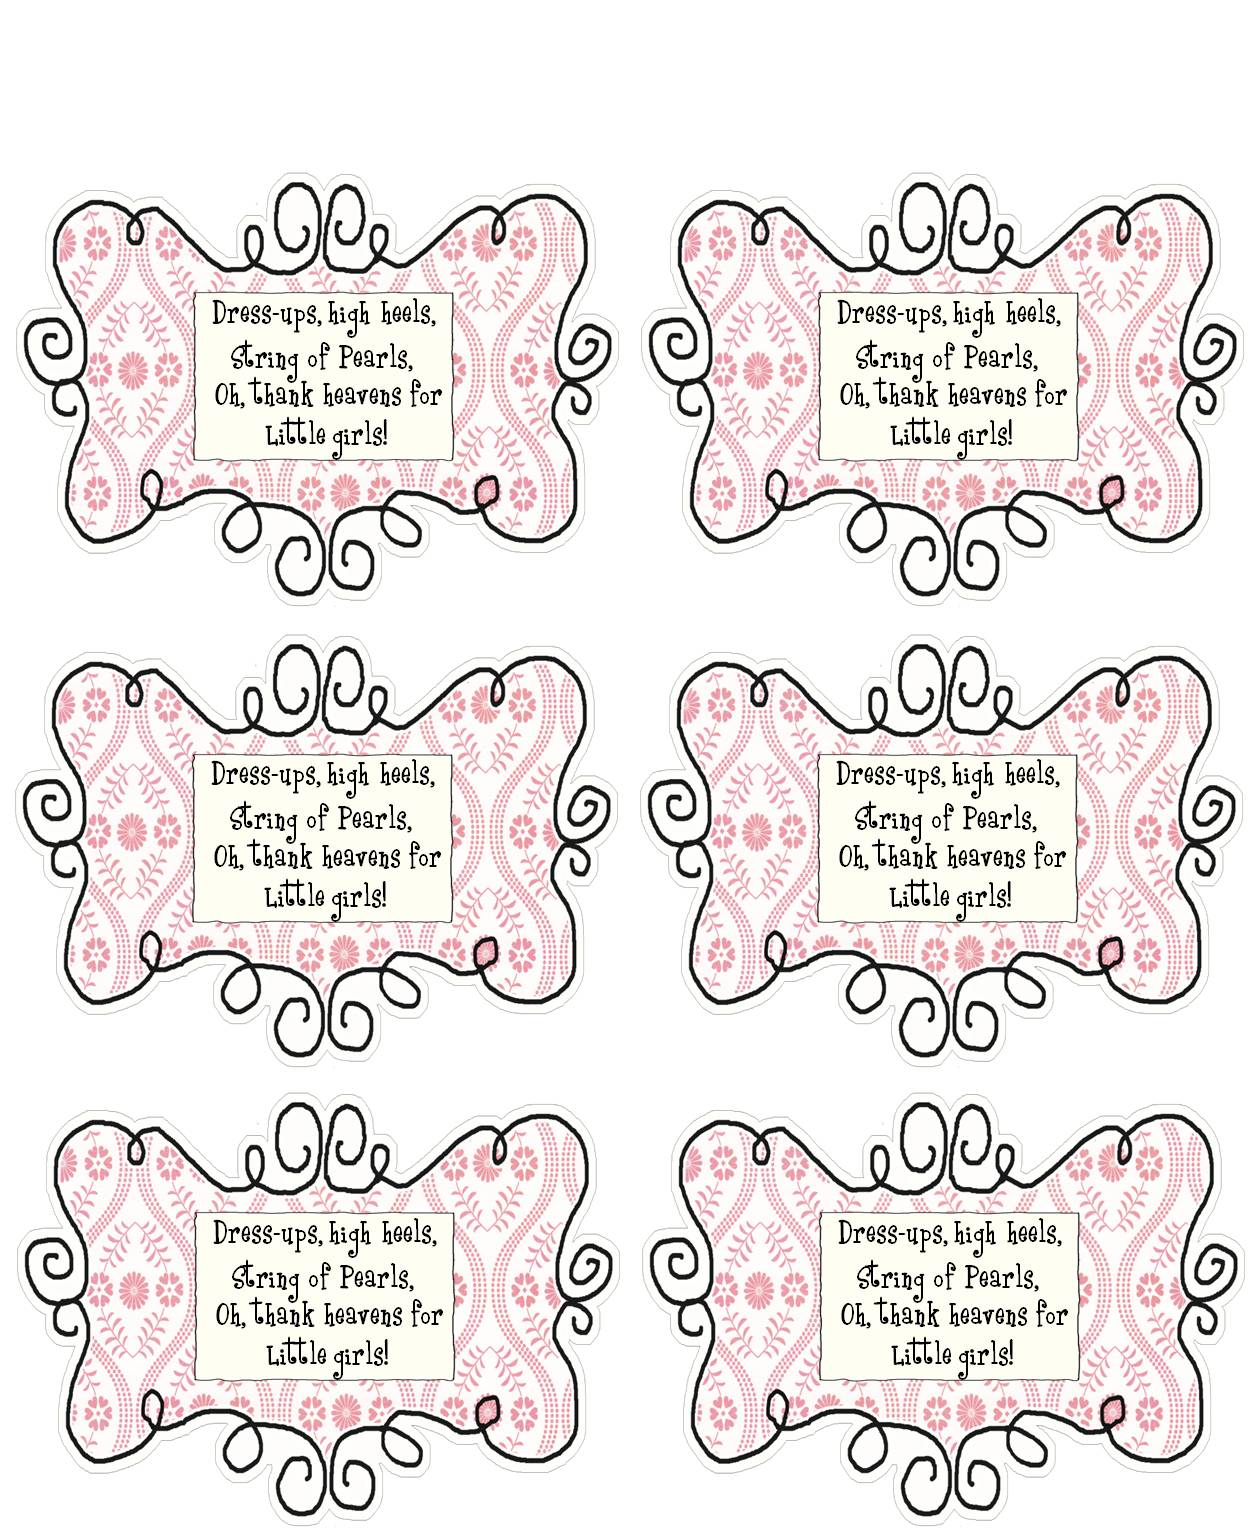 Thank You Quotes For Wedding Shower Gifts : Quotes For Bridal Shower Favors. QuotesGram